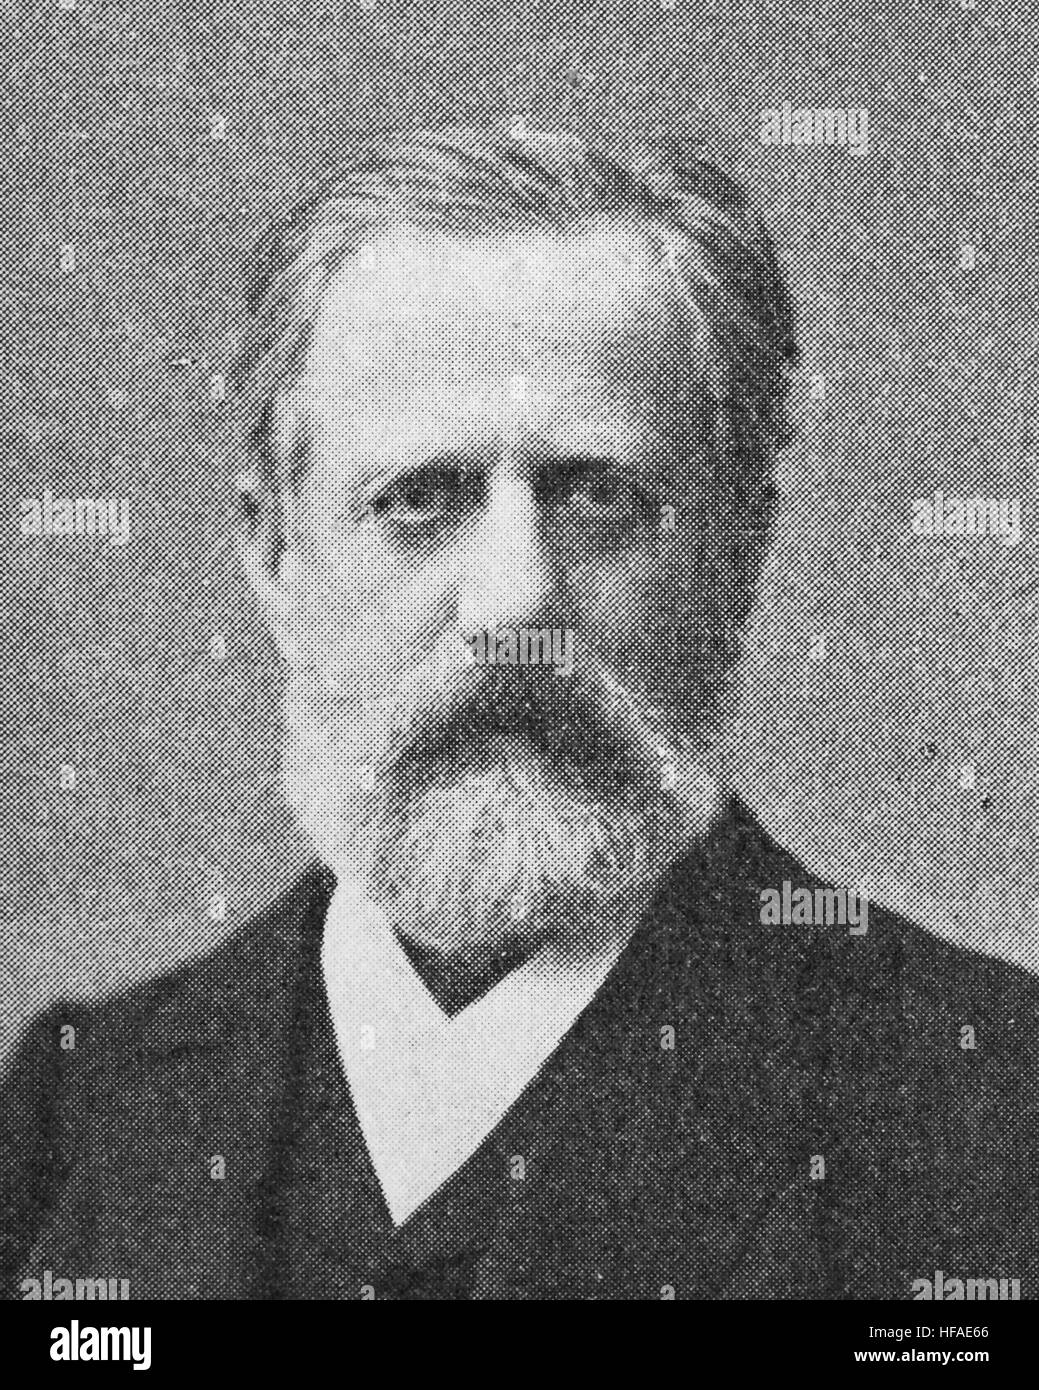 Heinrich Brunner, 1840-1915, was a German historian, reproduction photo from the year 1895, digital improved - Stock Image